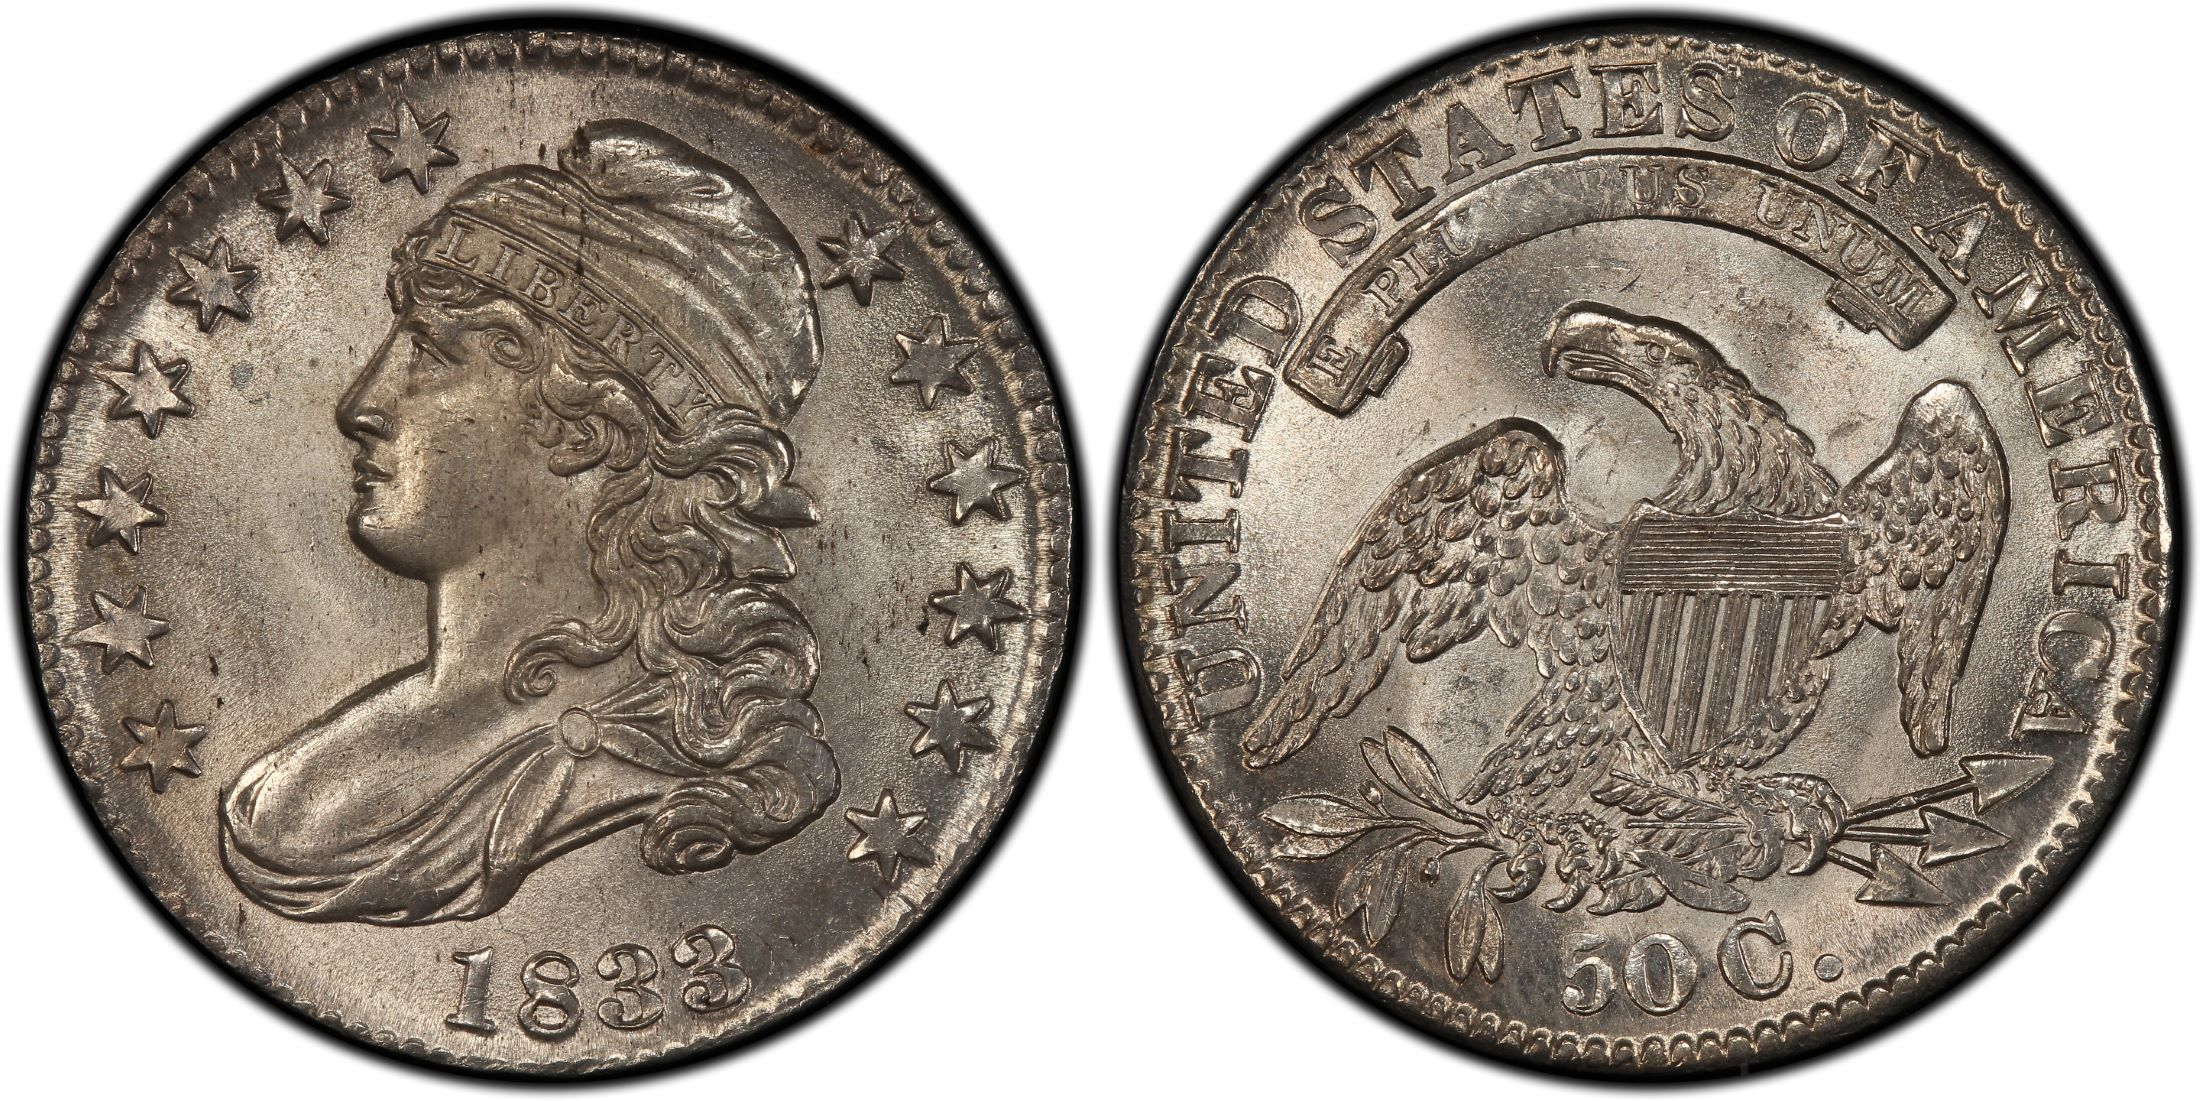 1833 50c Overton 106 Regular Strike Capped Bust Half